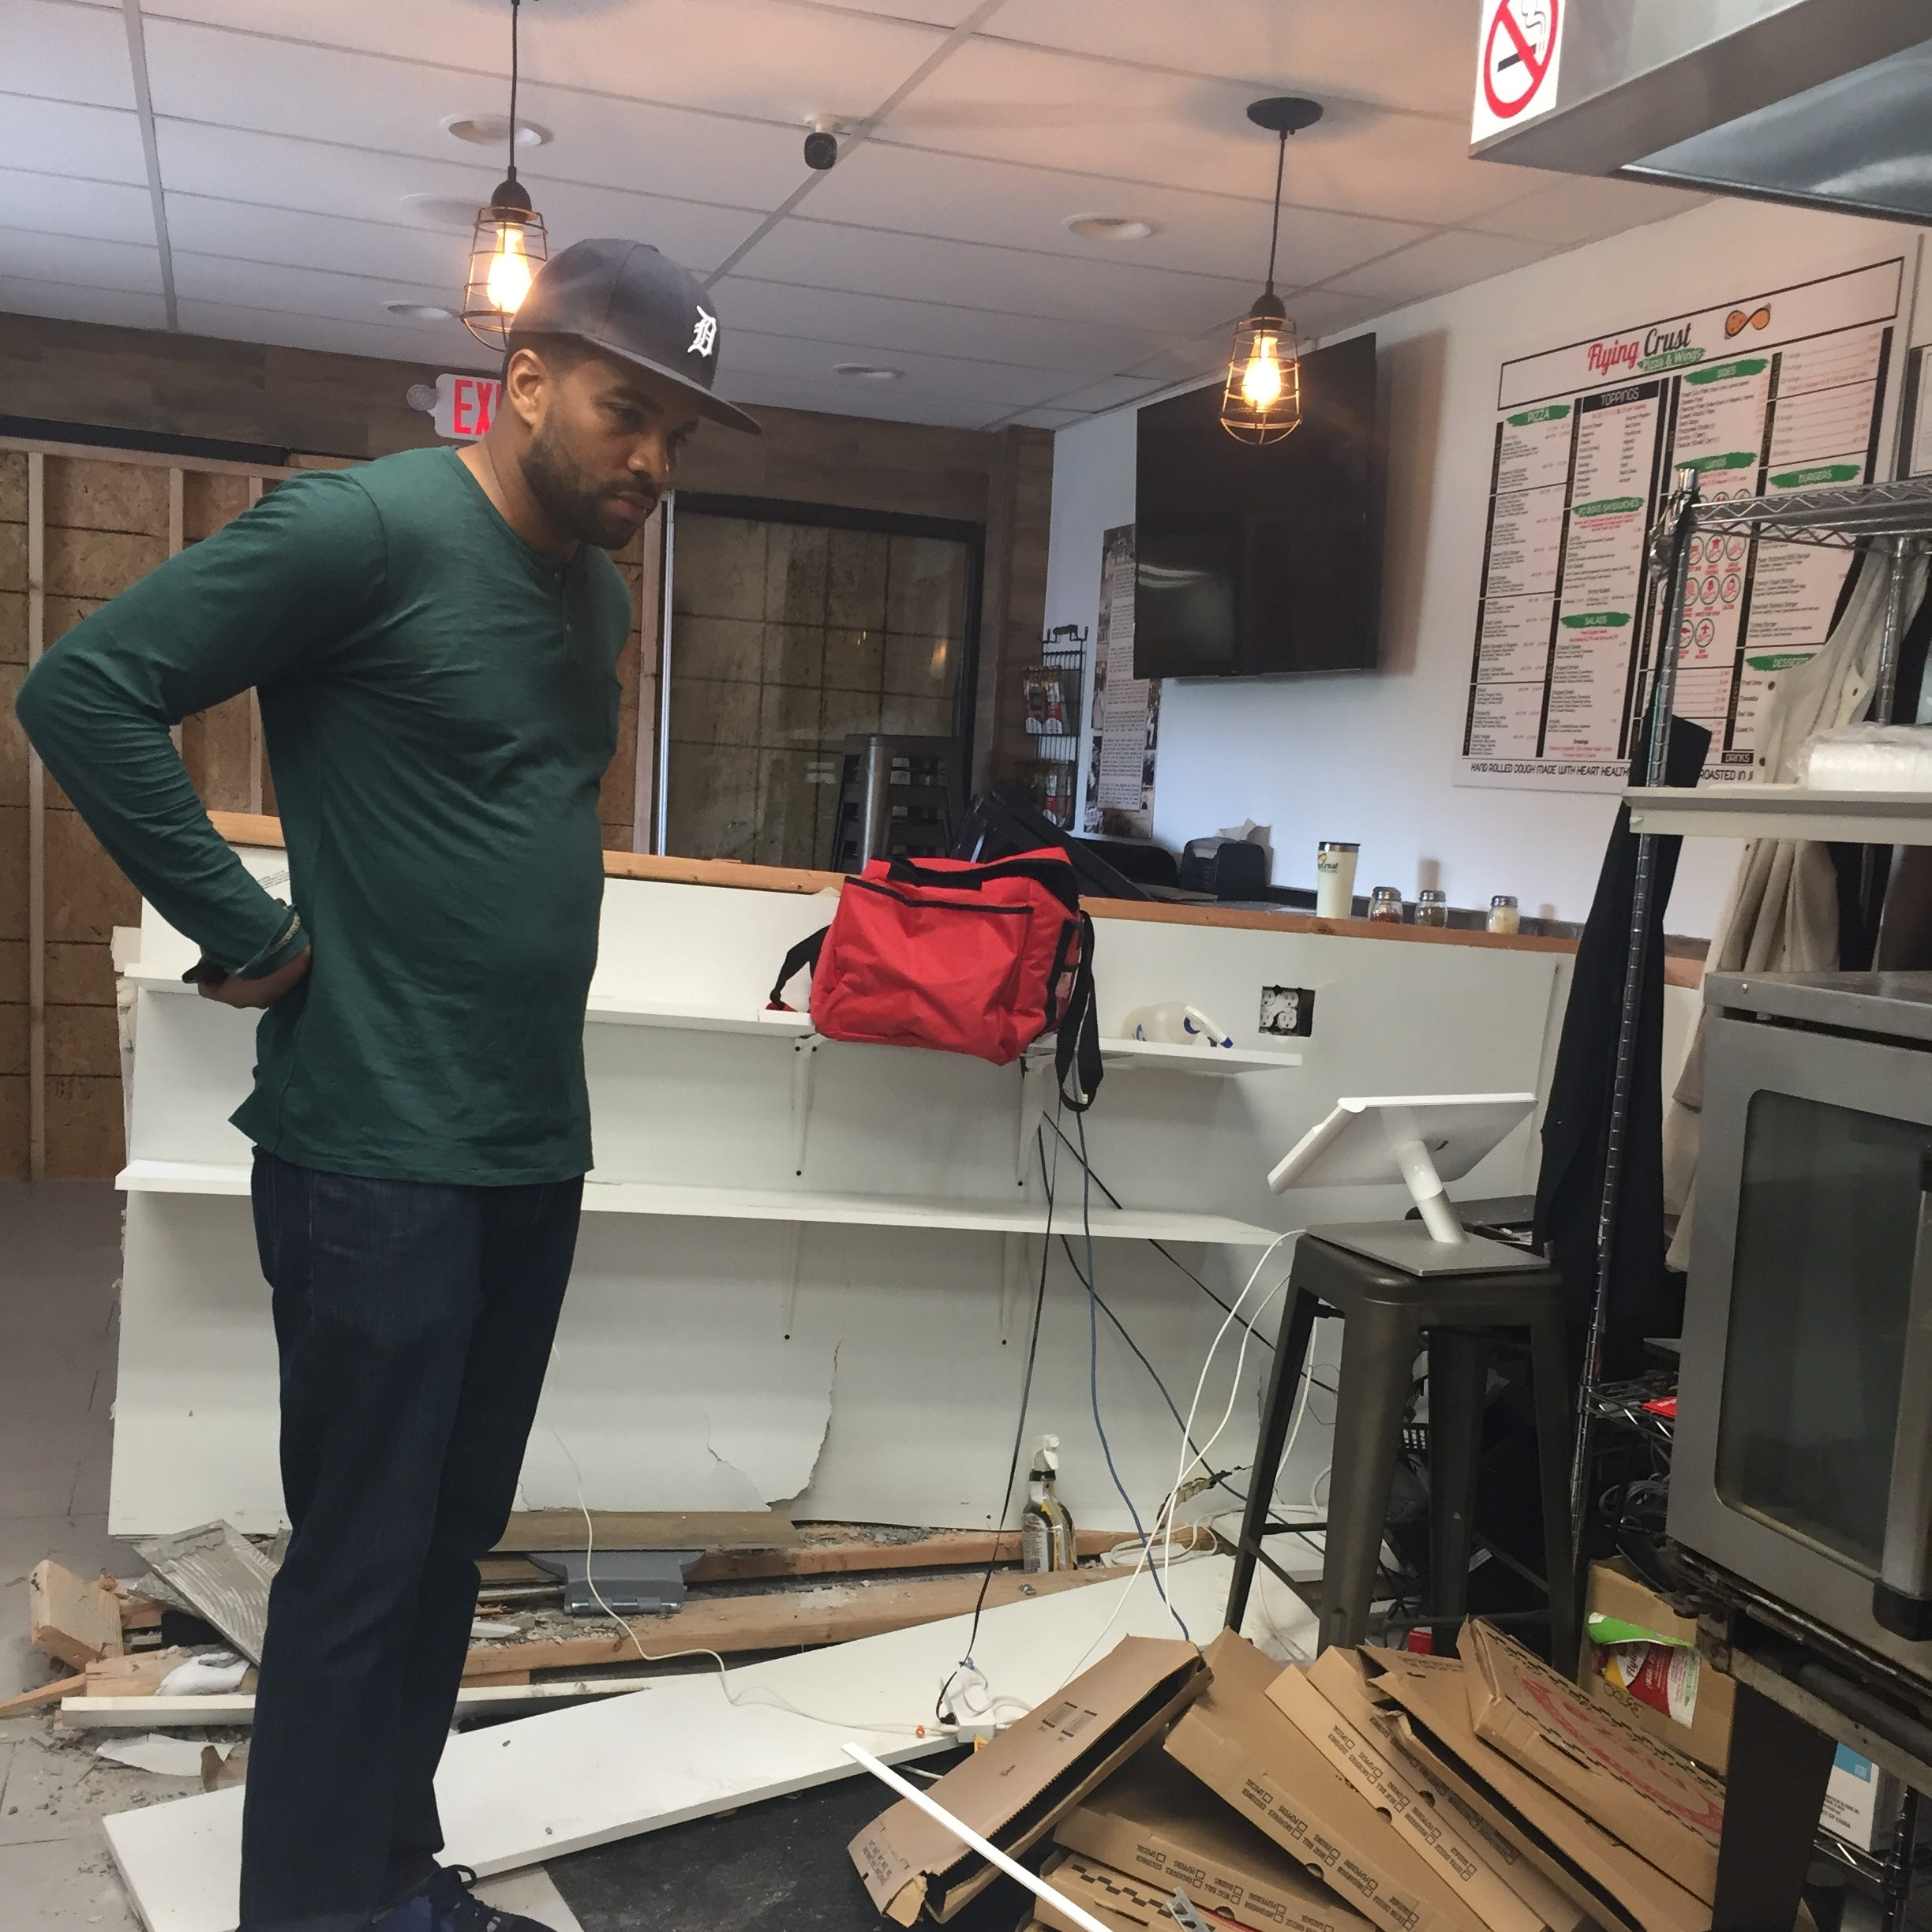 Police say county prosecutor taking over investigation of car crashing into Pennsauken eatery